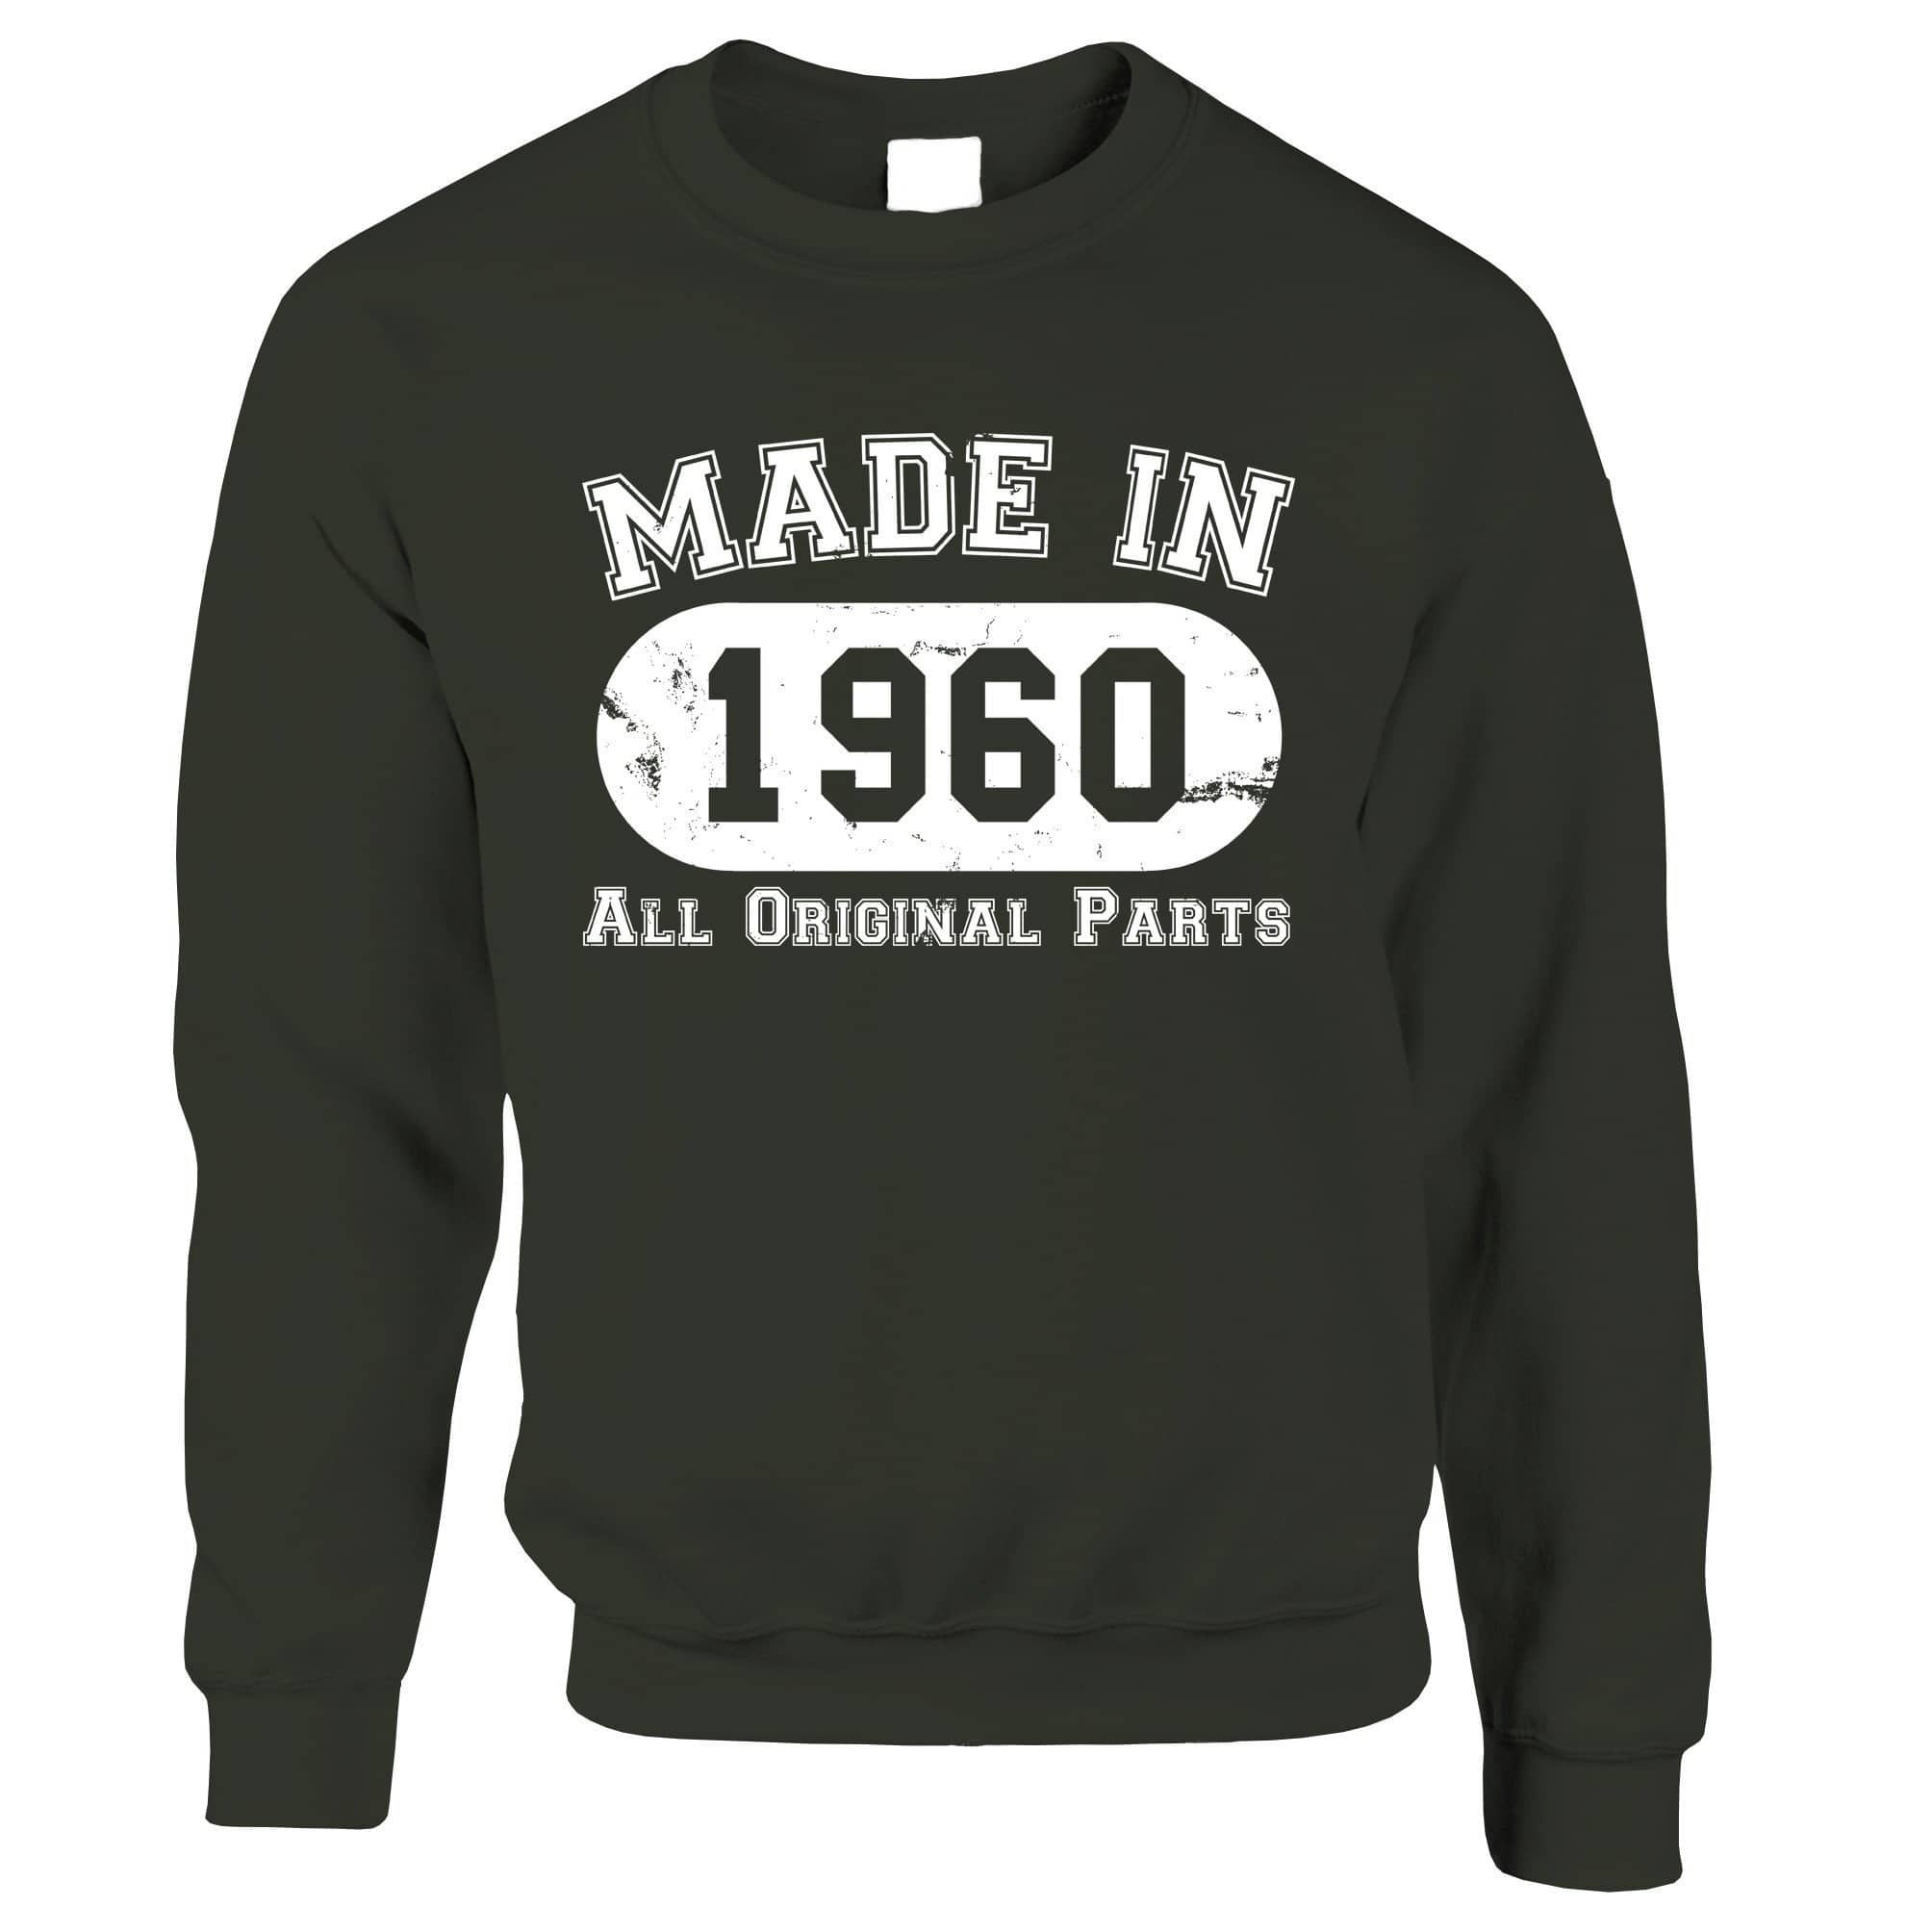 Made in 1960 All Original Parts Sweatshirt Jumper [Distressed]